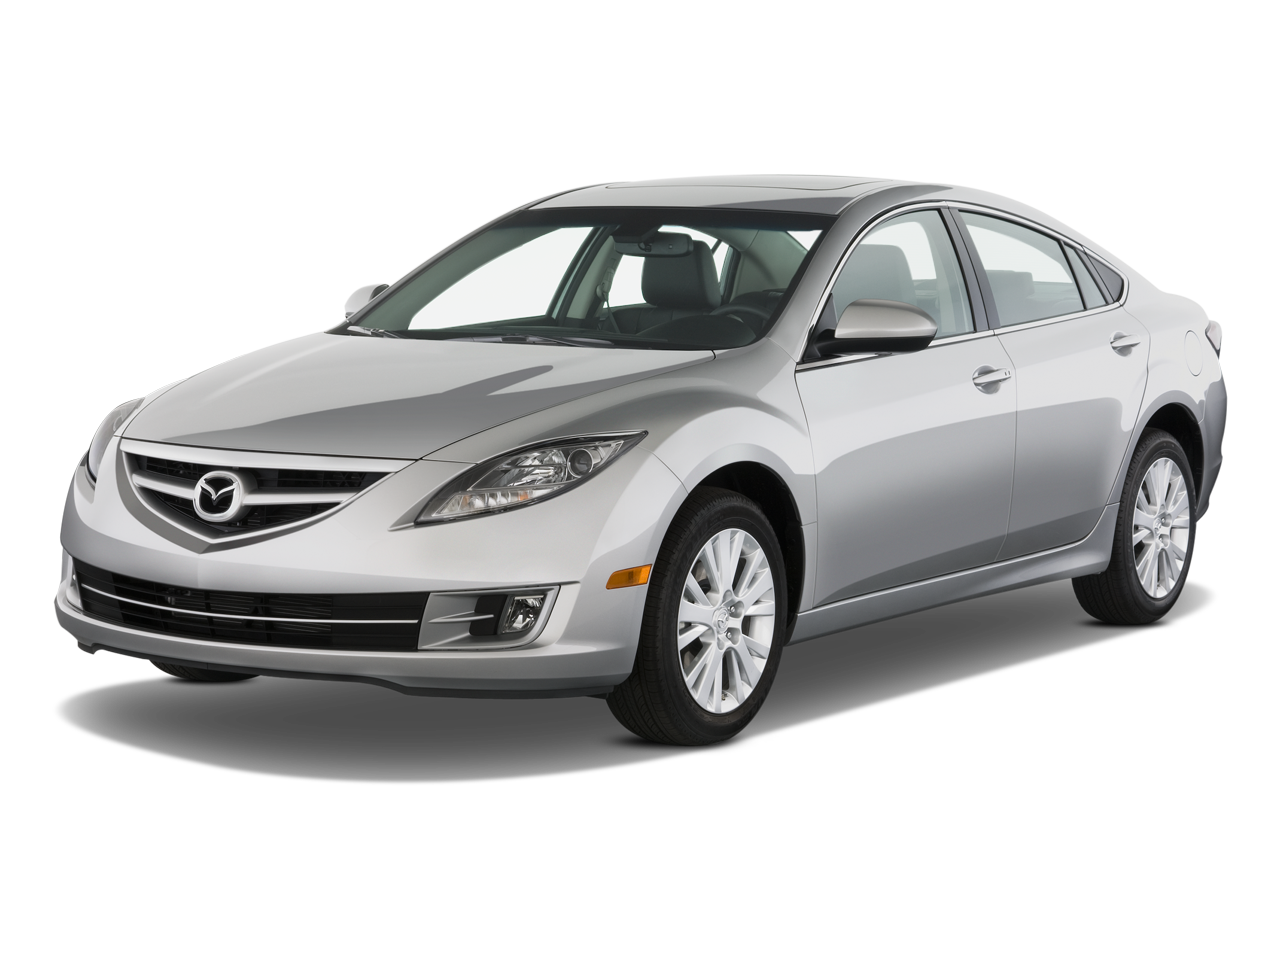 Research 2009                   MAZDA Mazda6 pictures, prices and reviews